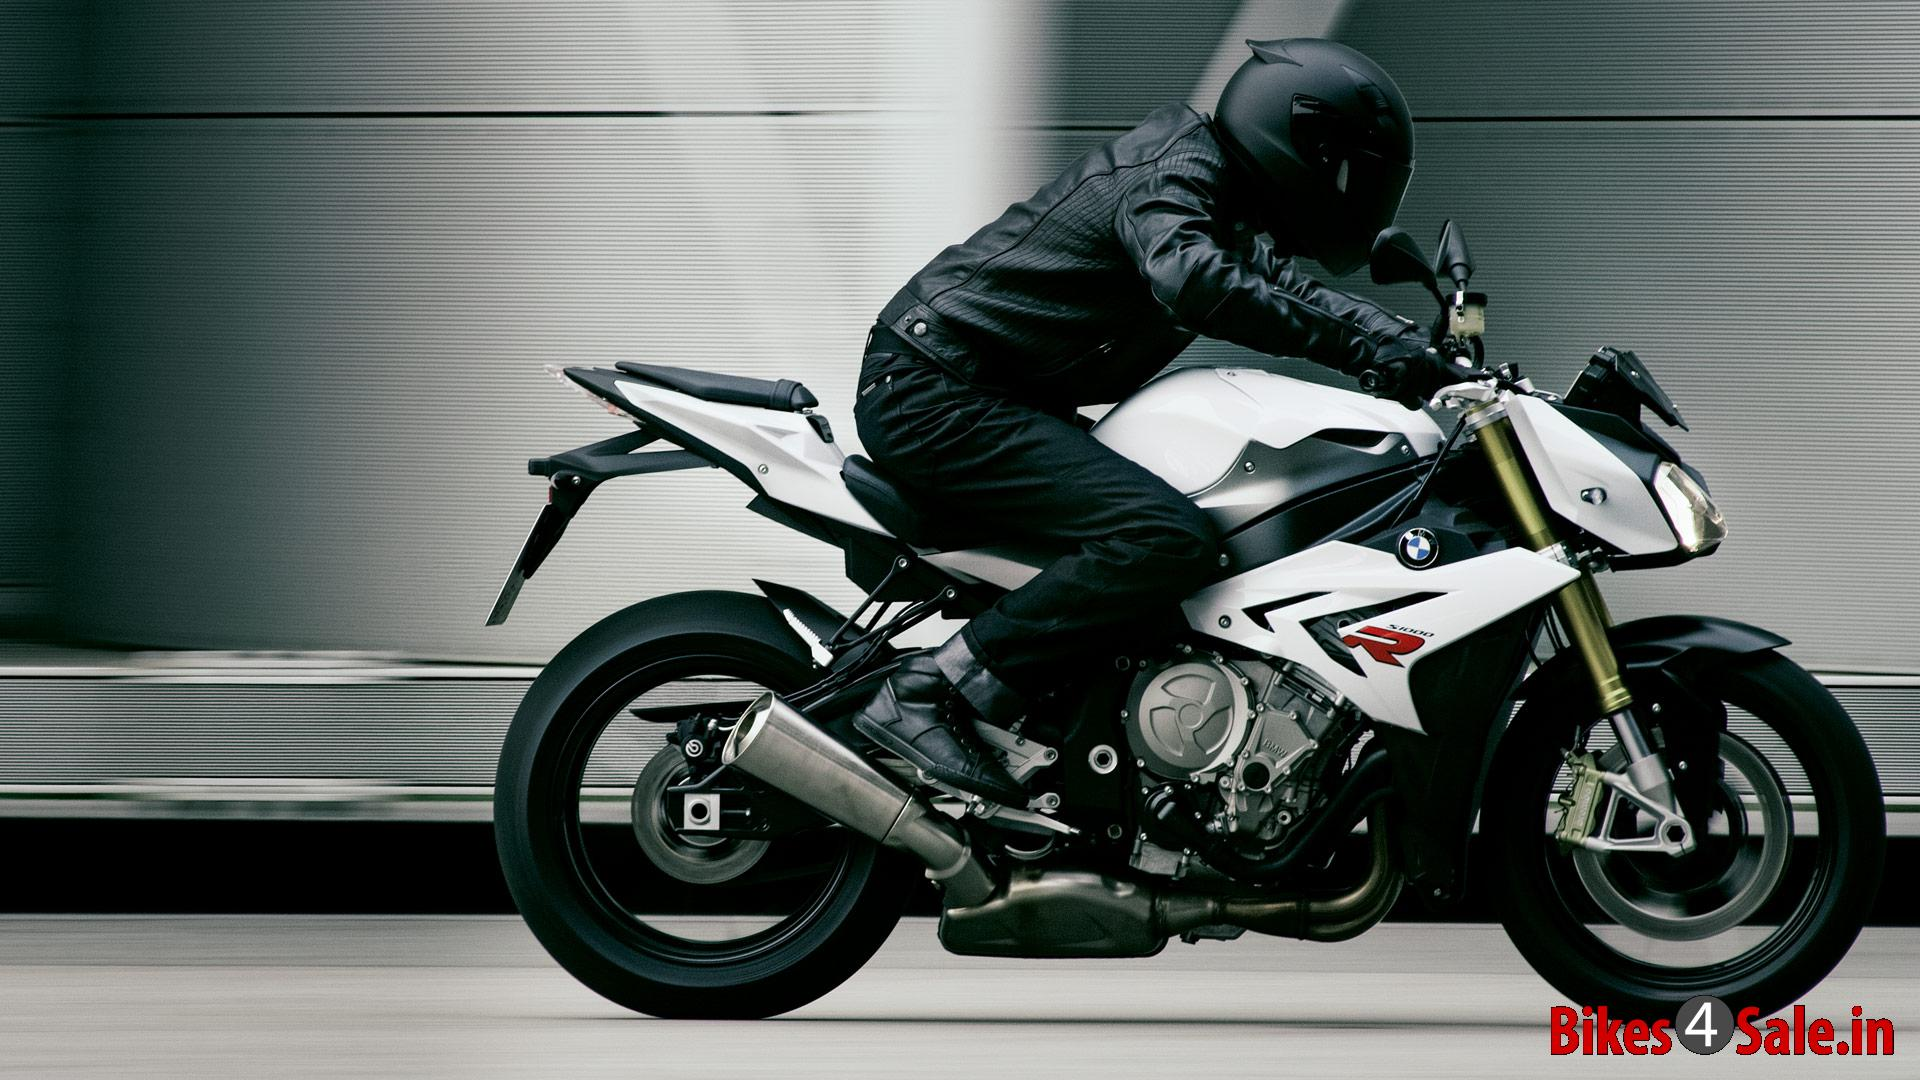 photo 6 bmw s 1000 r motorcycle picture gallery bikes4sale. Black Bedroom Furniture Sets. Home Design Ideas